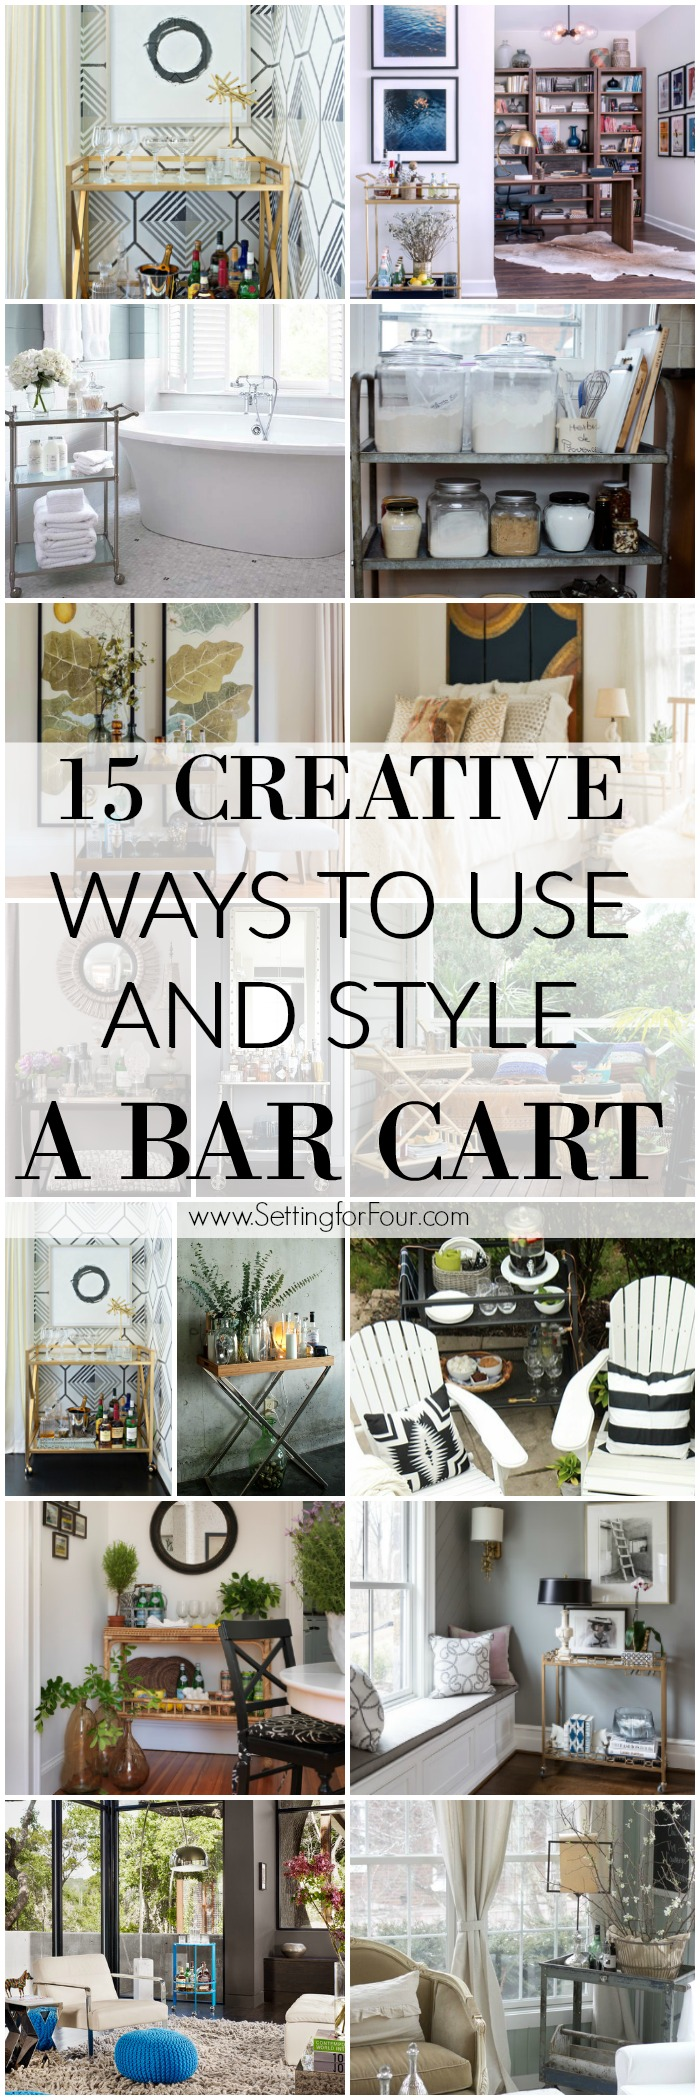 See these 15 CREATIVE Ways to Use and Style a Bar Cart and get stylish and clever ideas on how to use them in kitchens, dining rooms, bathrooms and bedrooms!